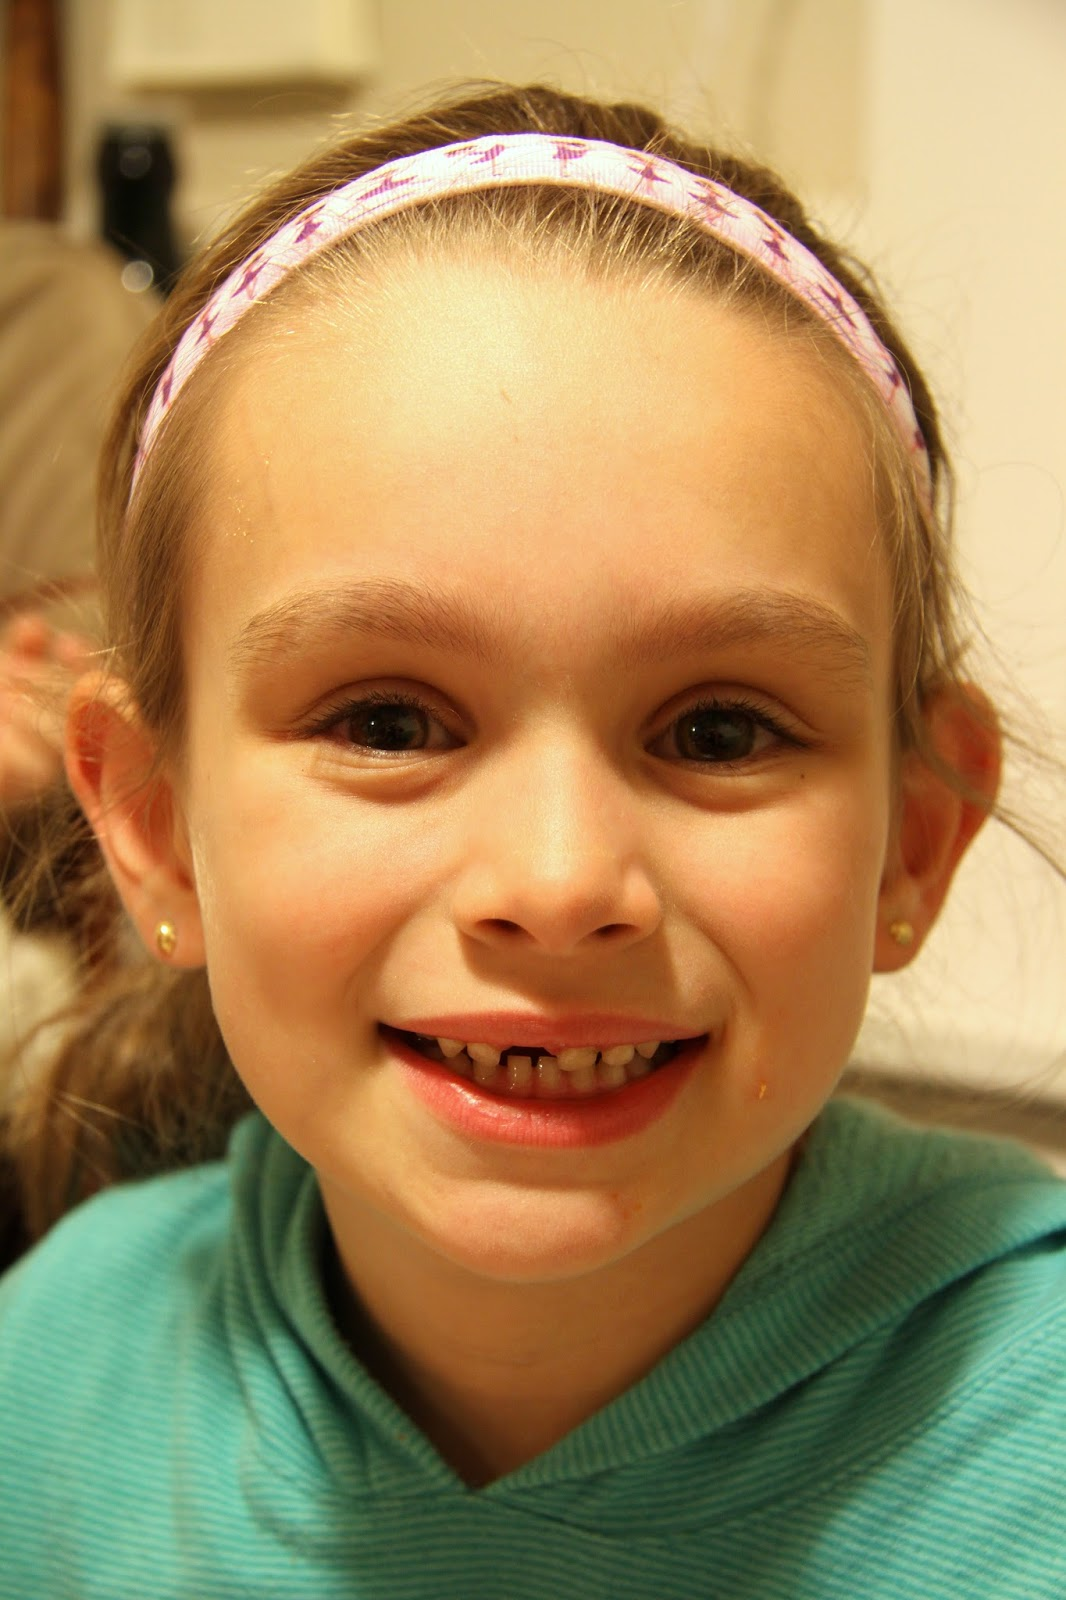 La Famiglia My Big 6 Year Old Loses Her First Tooth